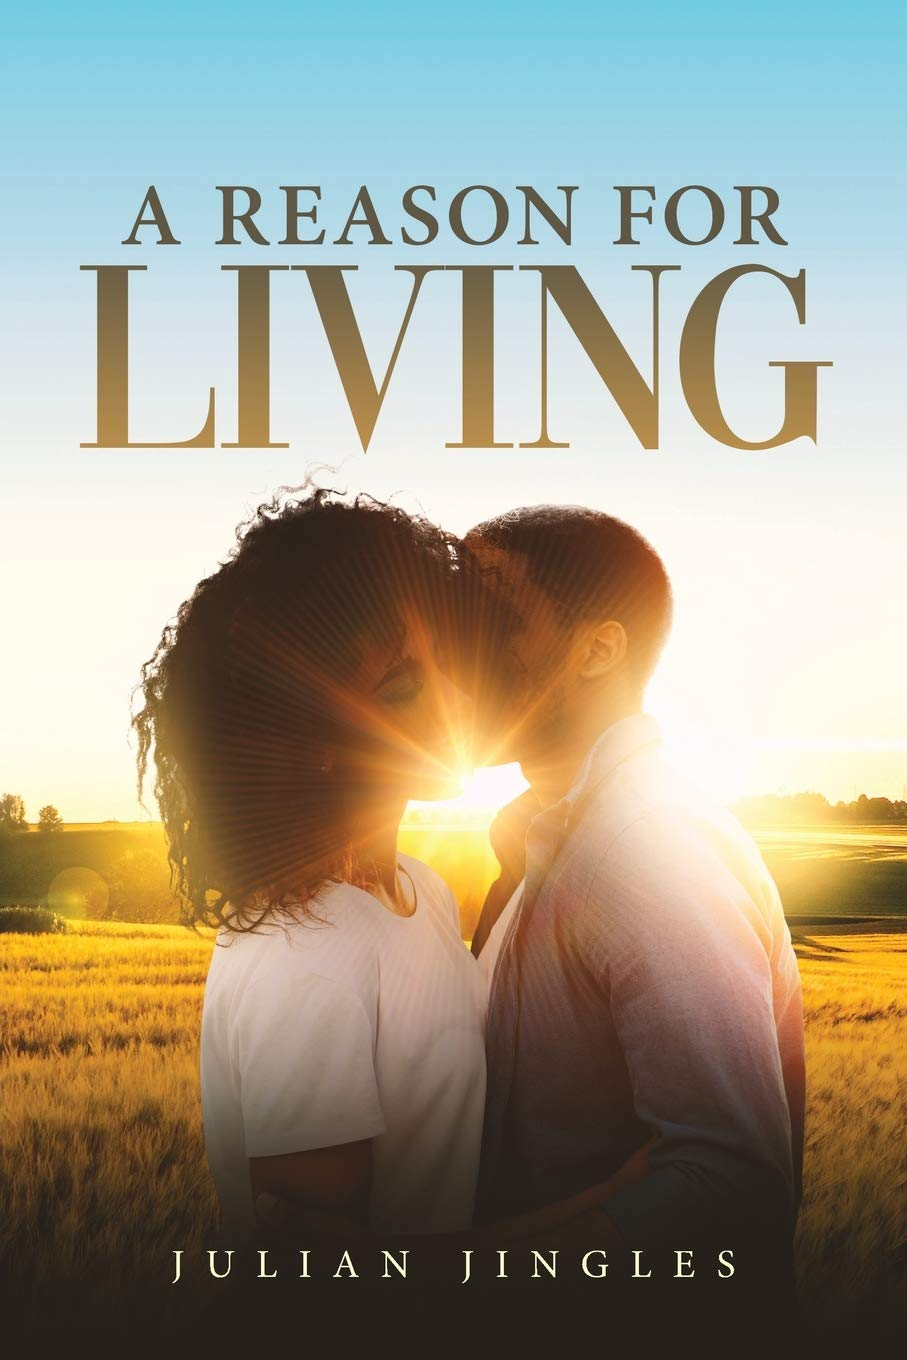 A Reason For Living By Julian Jingles Now on Amazon